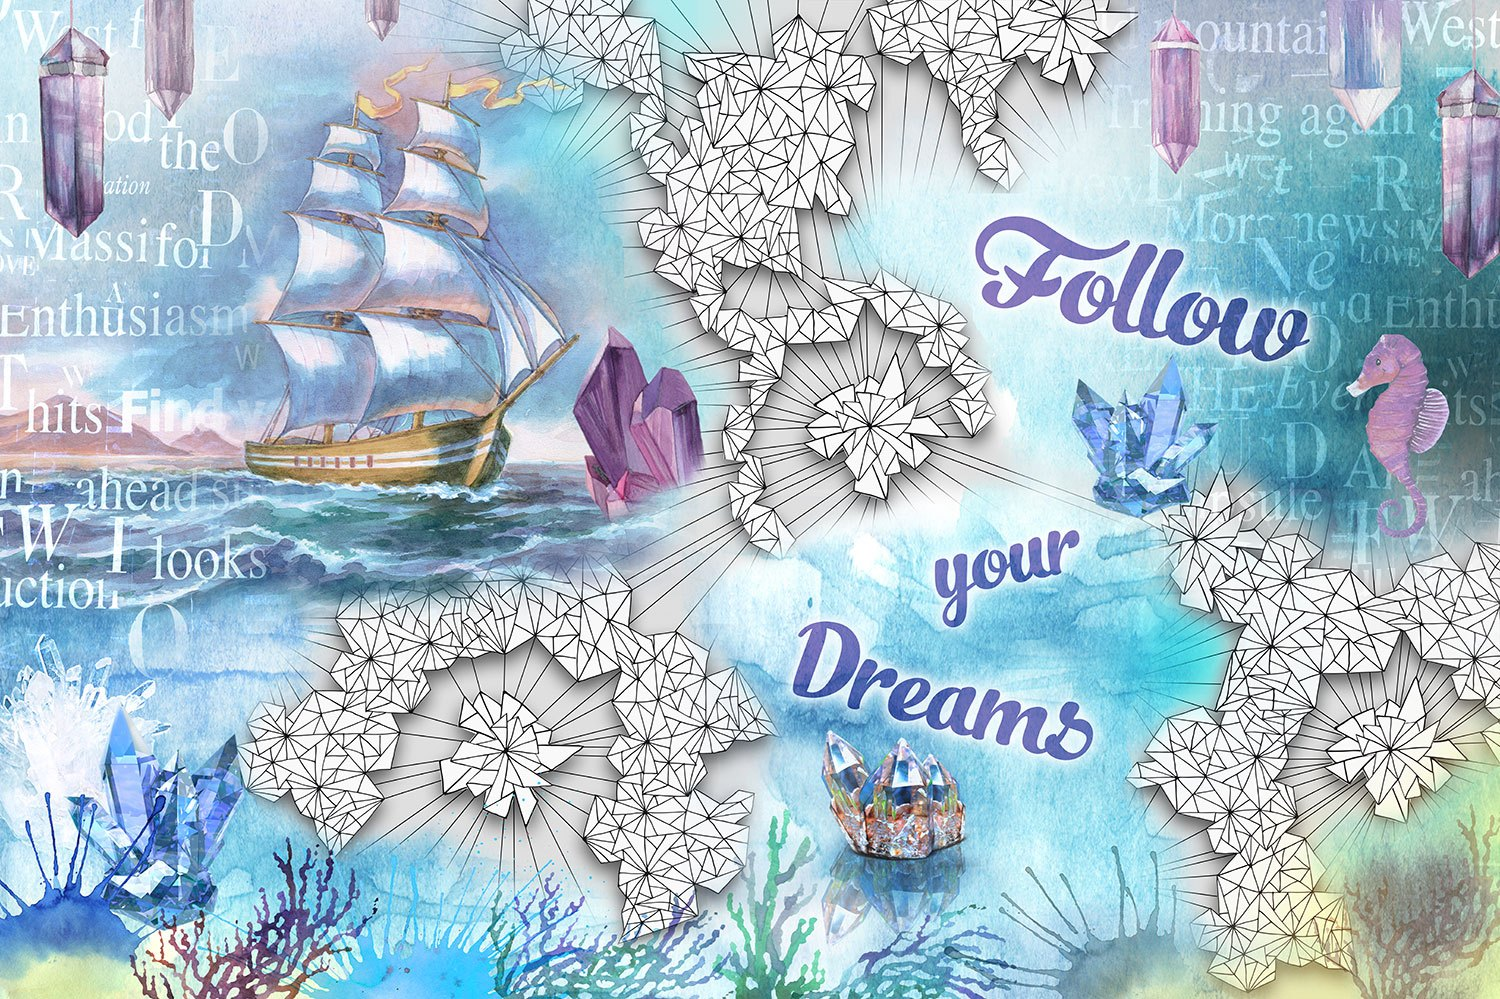 Fototapeten: Follow you dreams